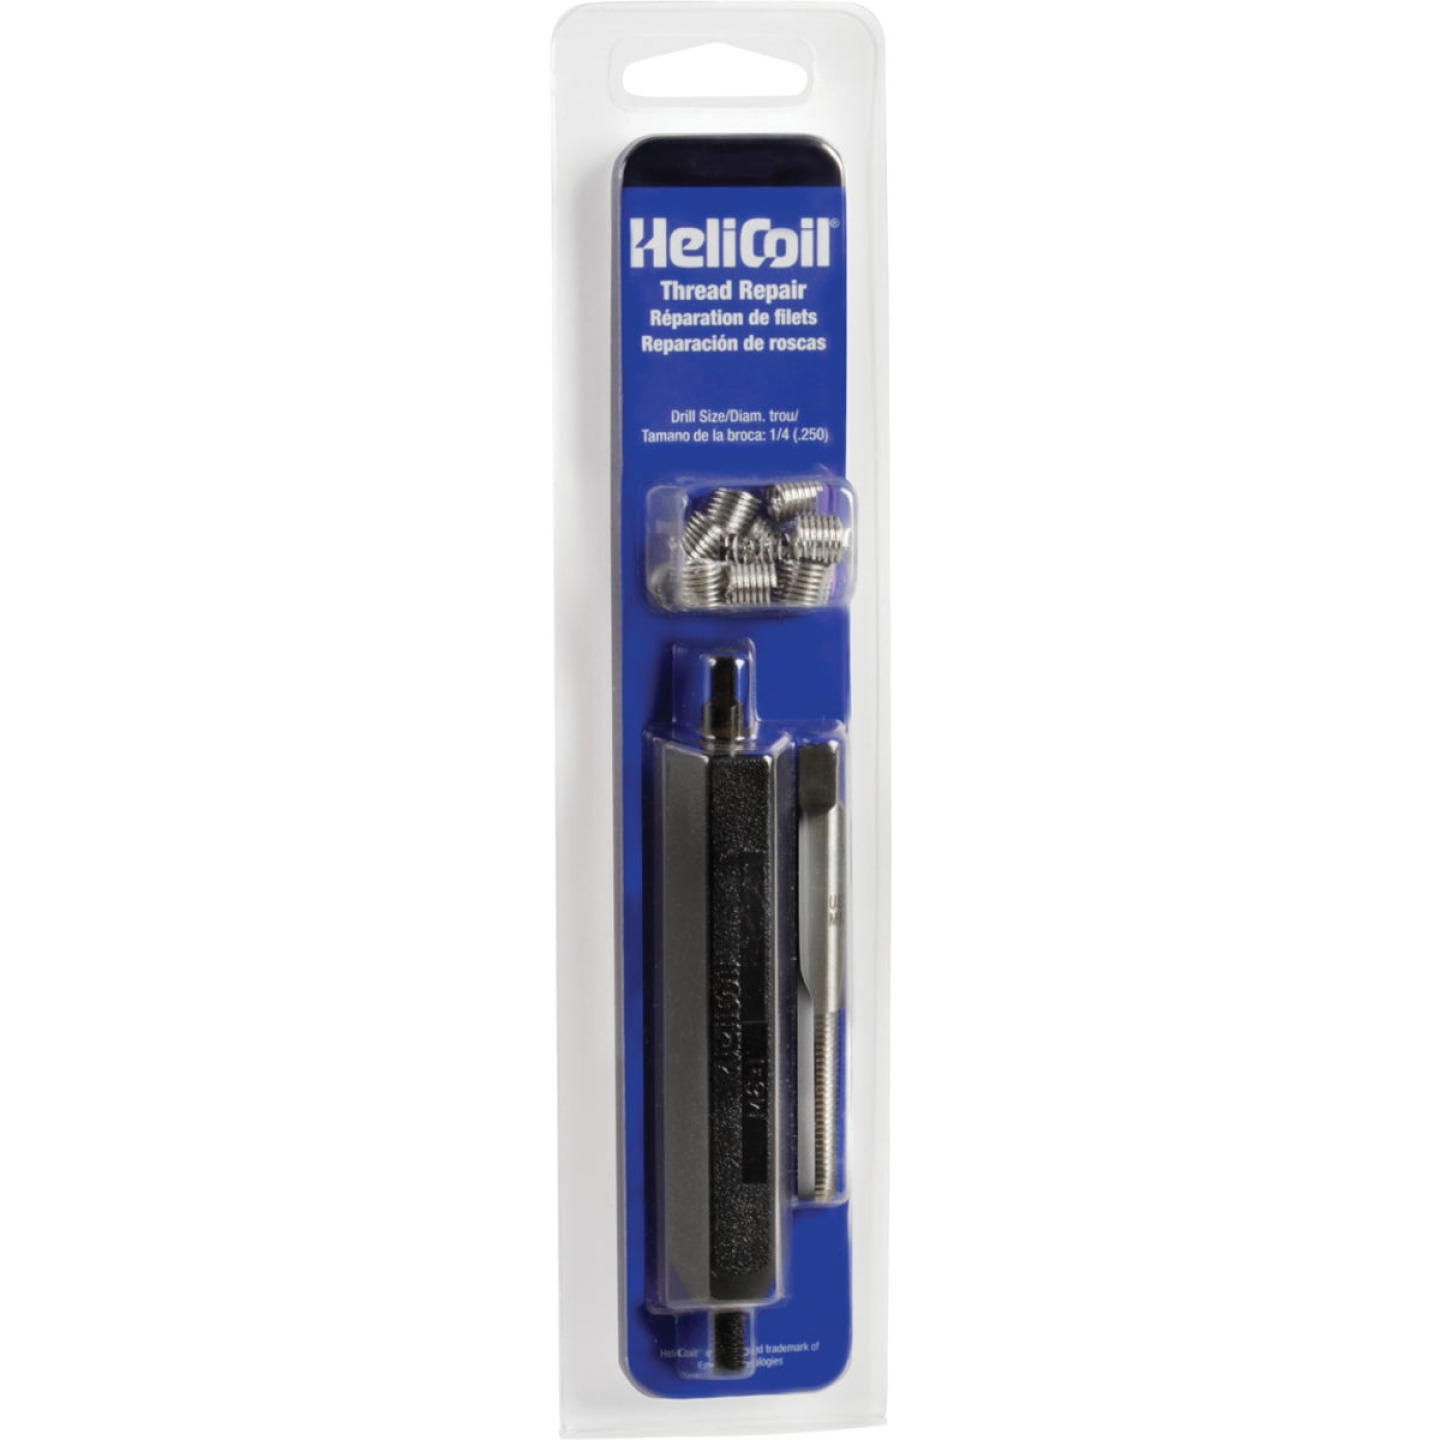 HeliCoil M8 x 1.25 Stainless Steel Thread Repair Kit Image 1